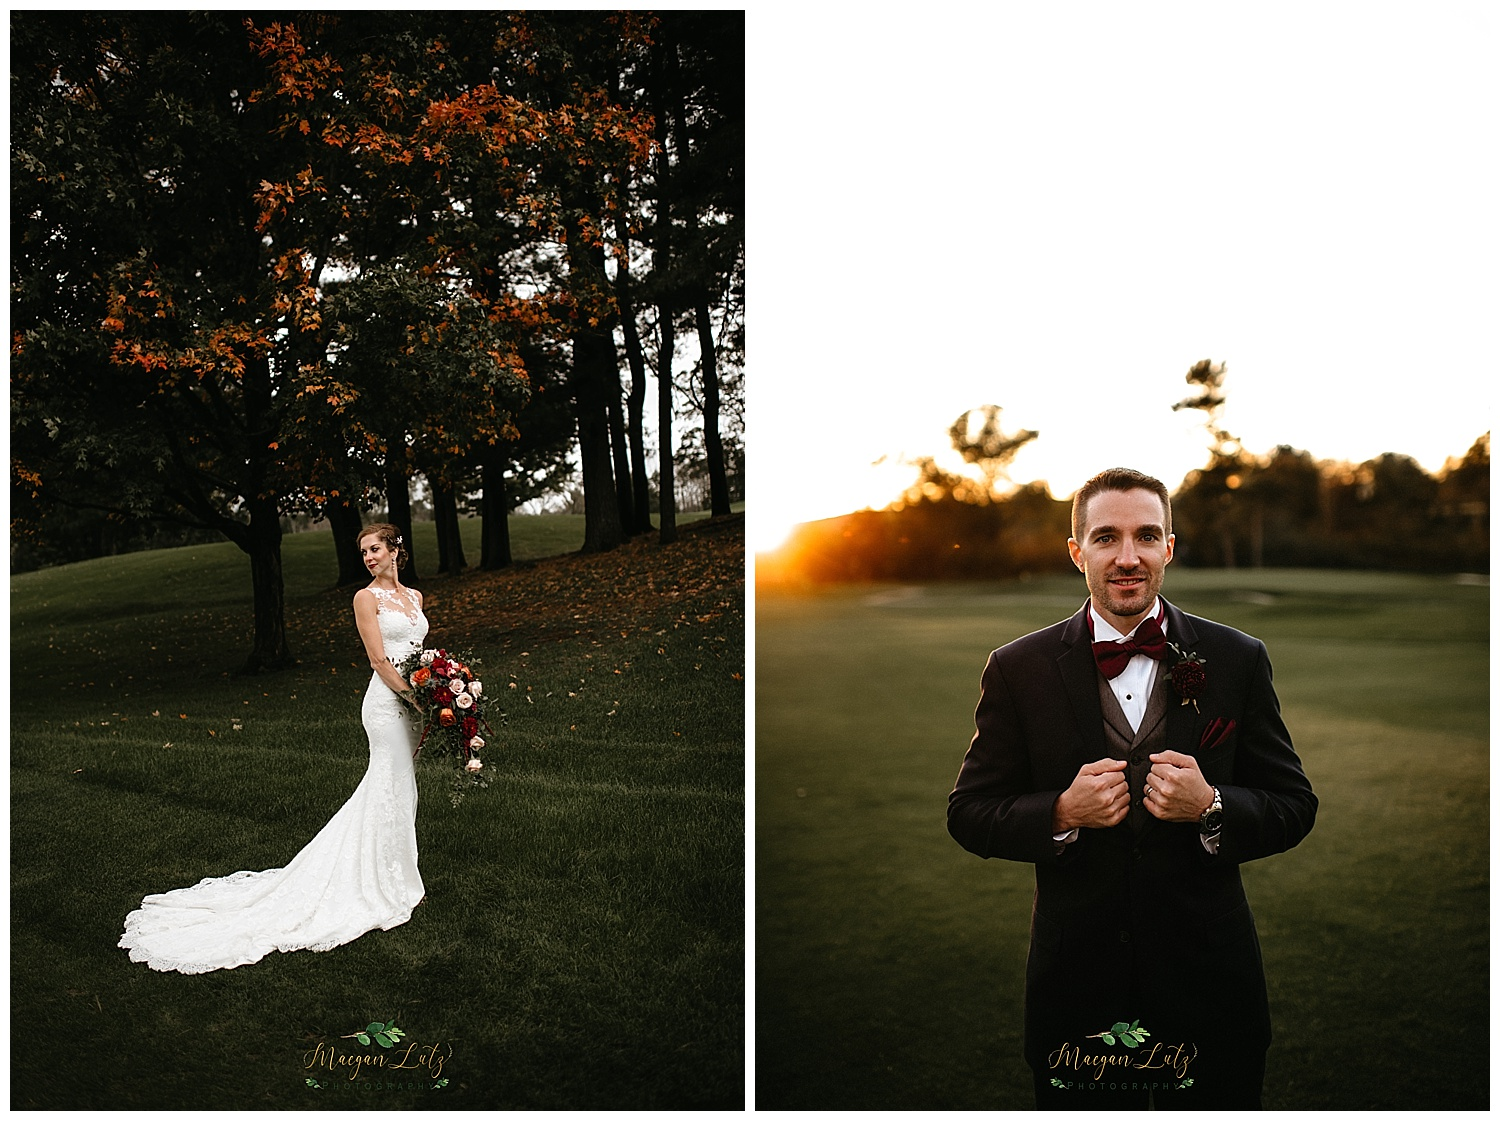 NEPA-wedding-photographer-at-Glen-Oak-Country-Club-Clarks-Summit-PA_0034.jpg